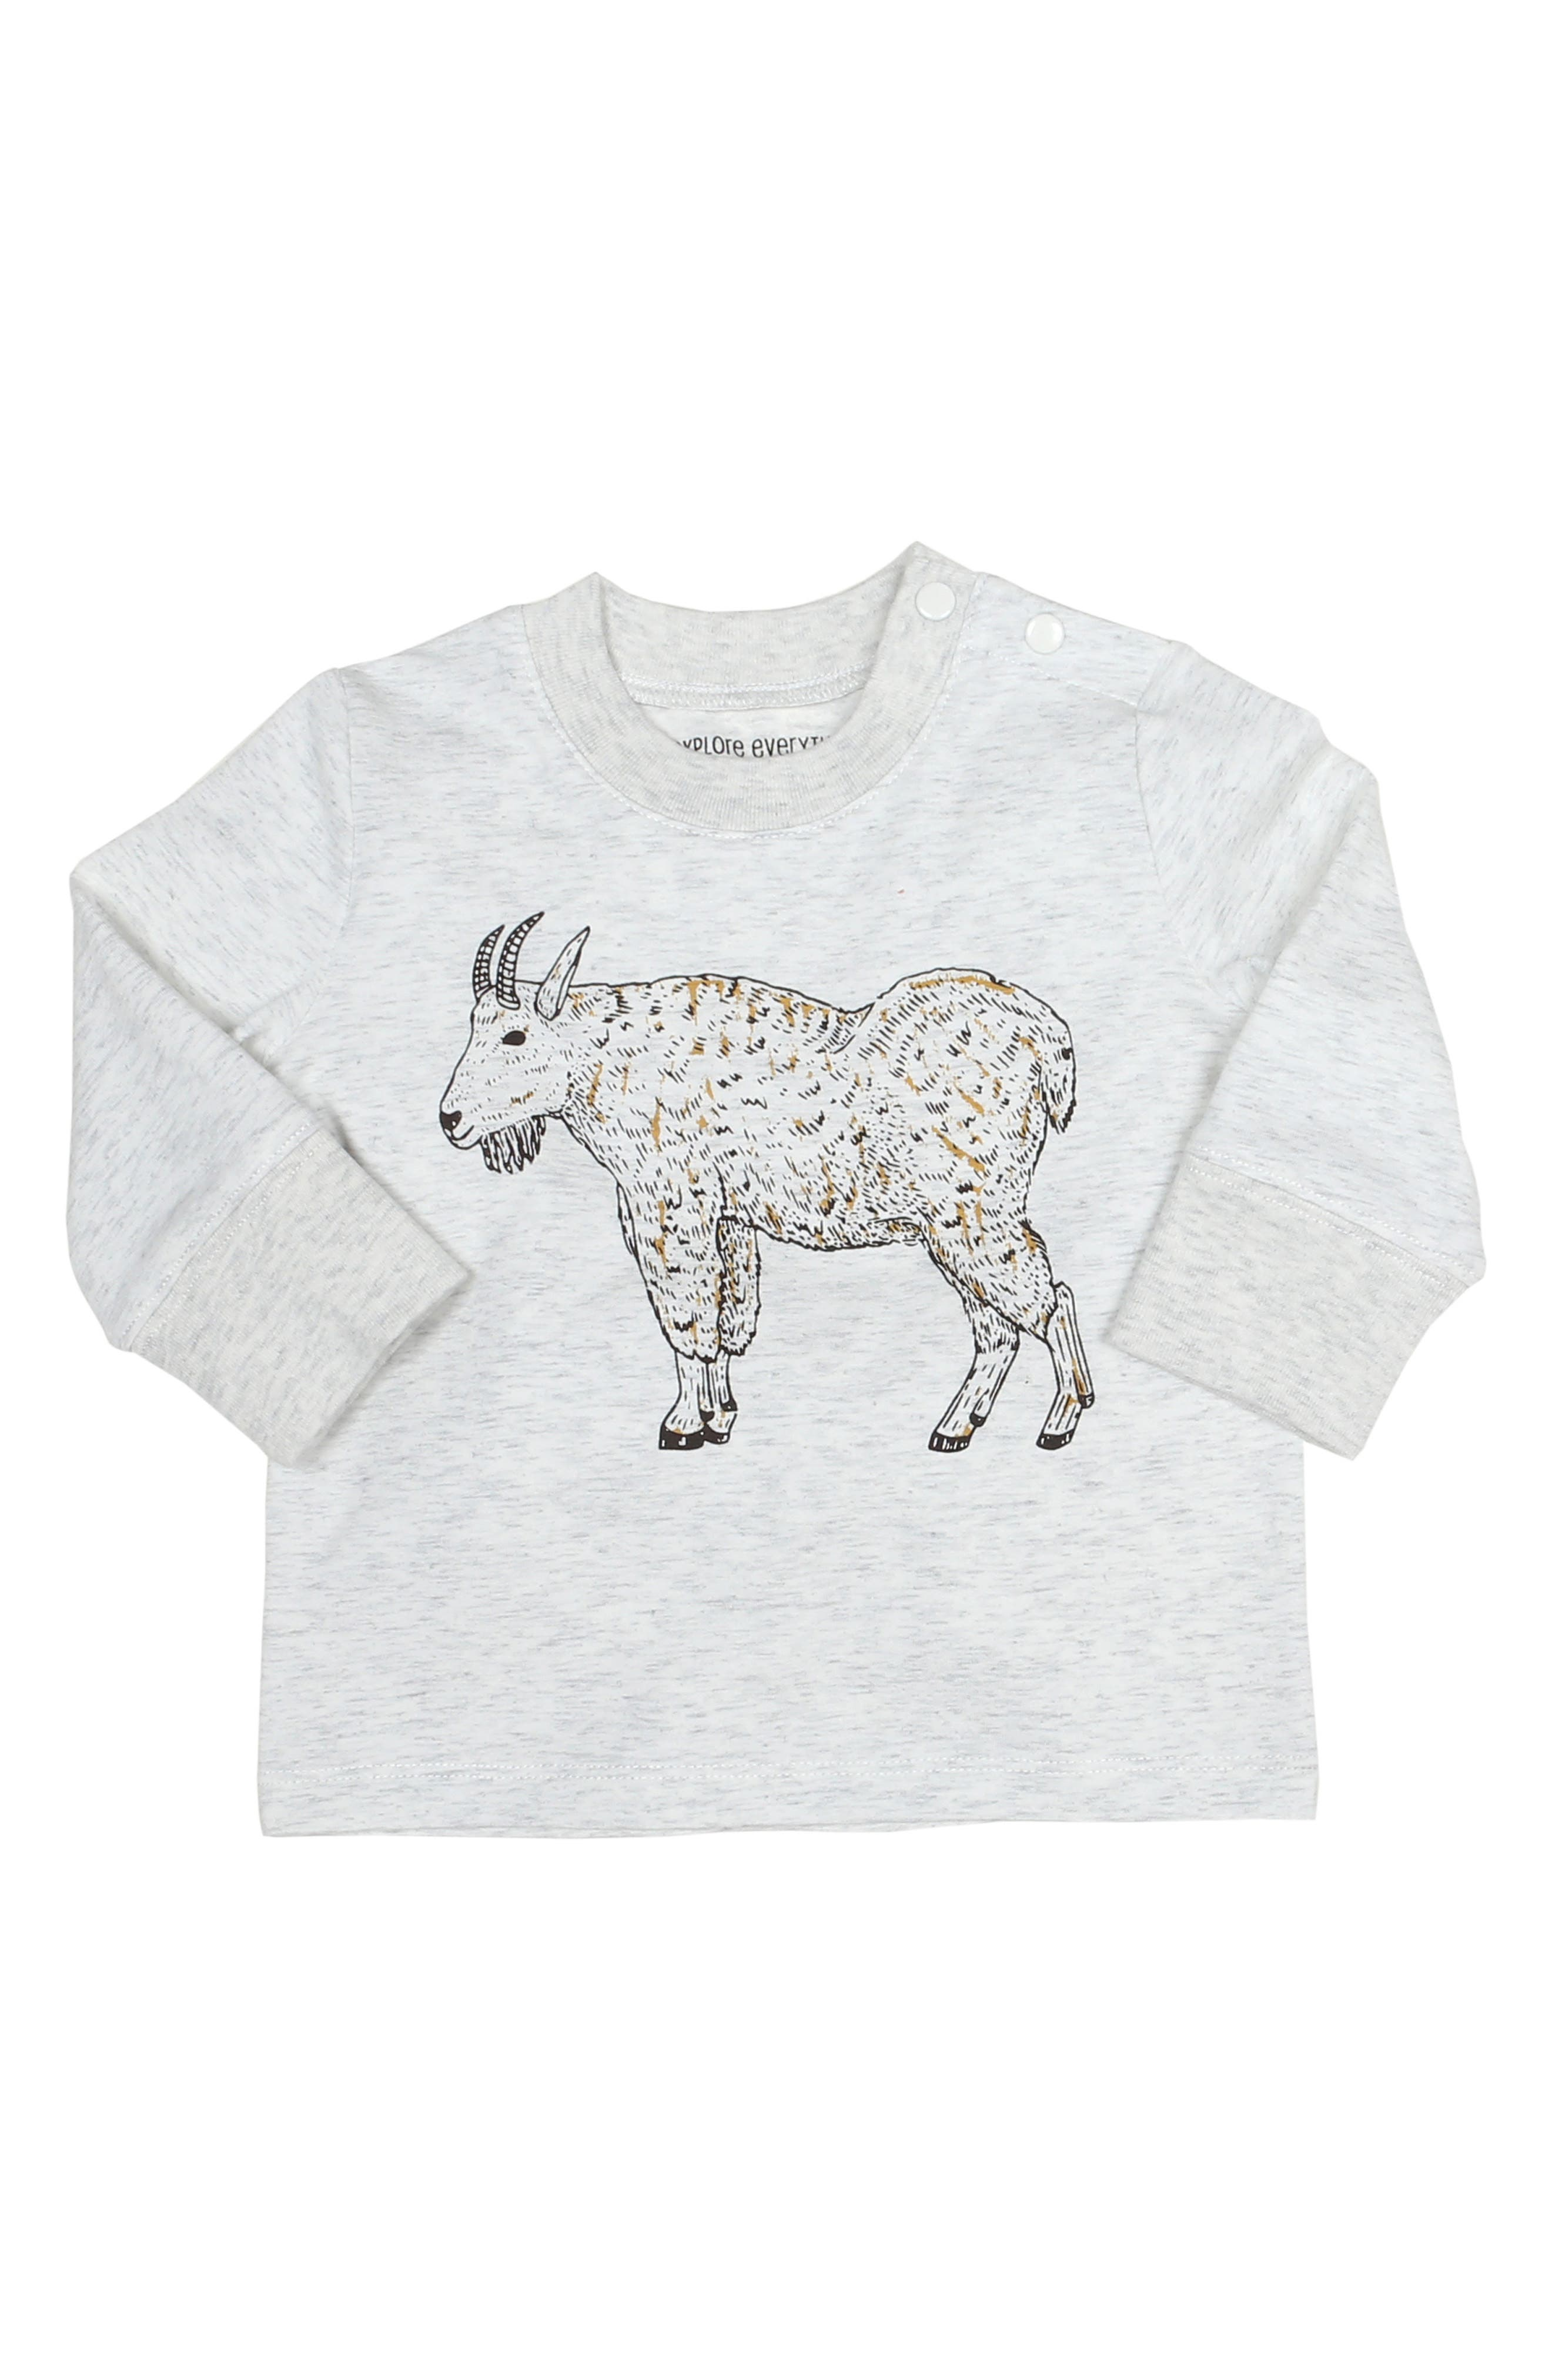 Billy Goat Graphic T-Shirt,                             Main thumbnail 1, color,                             HEATHER GREY